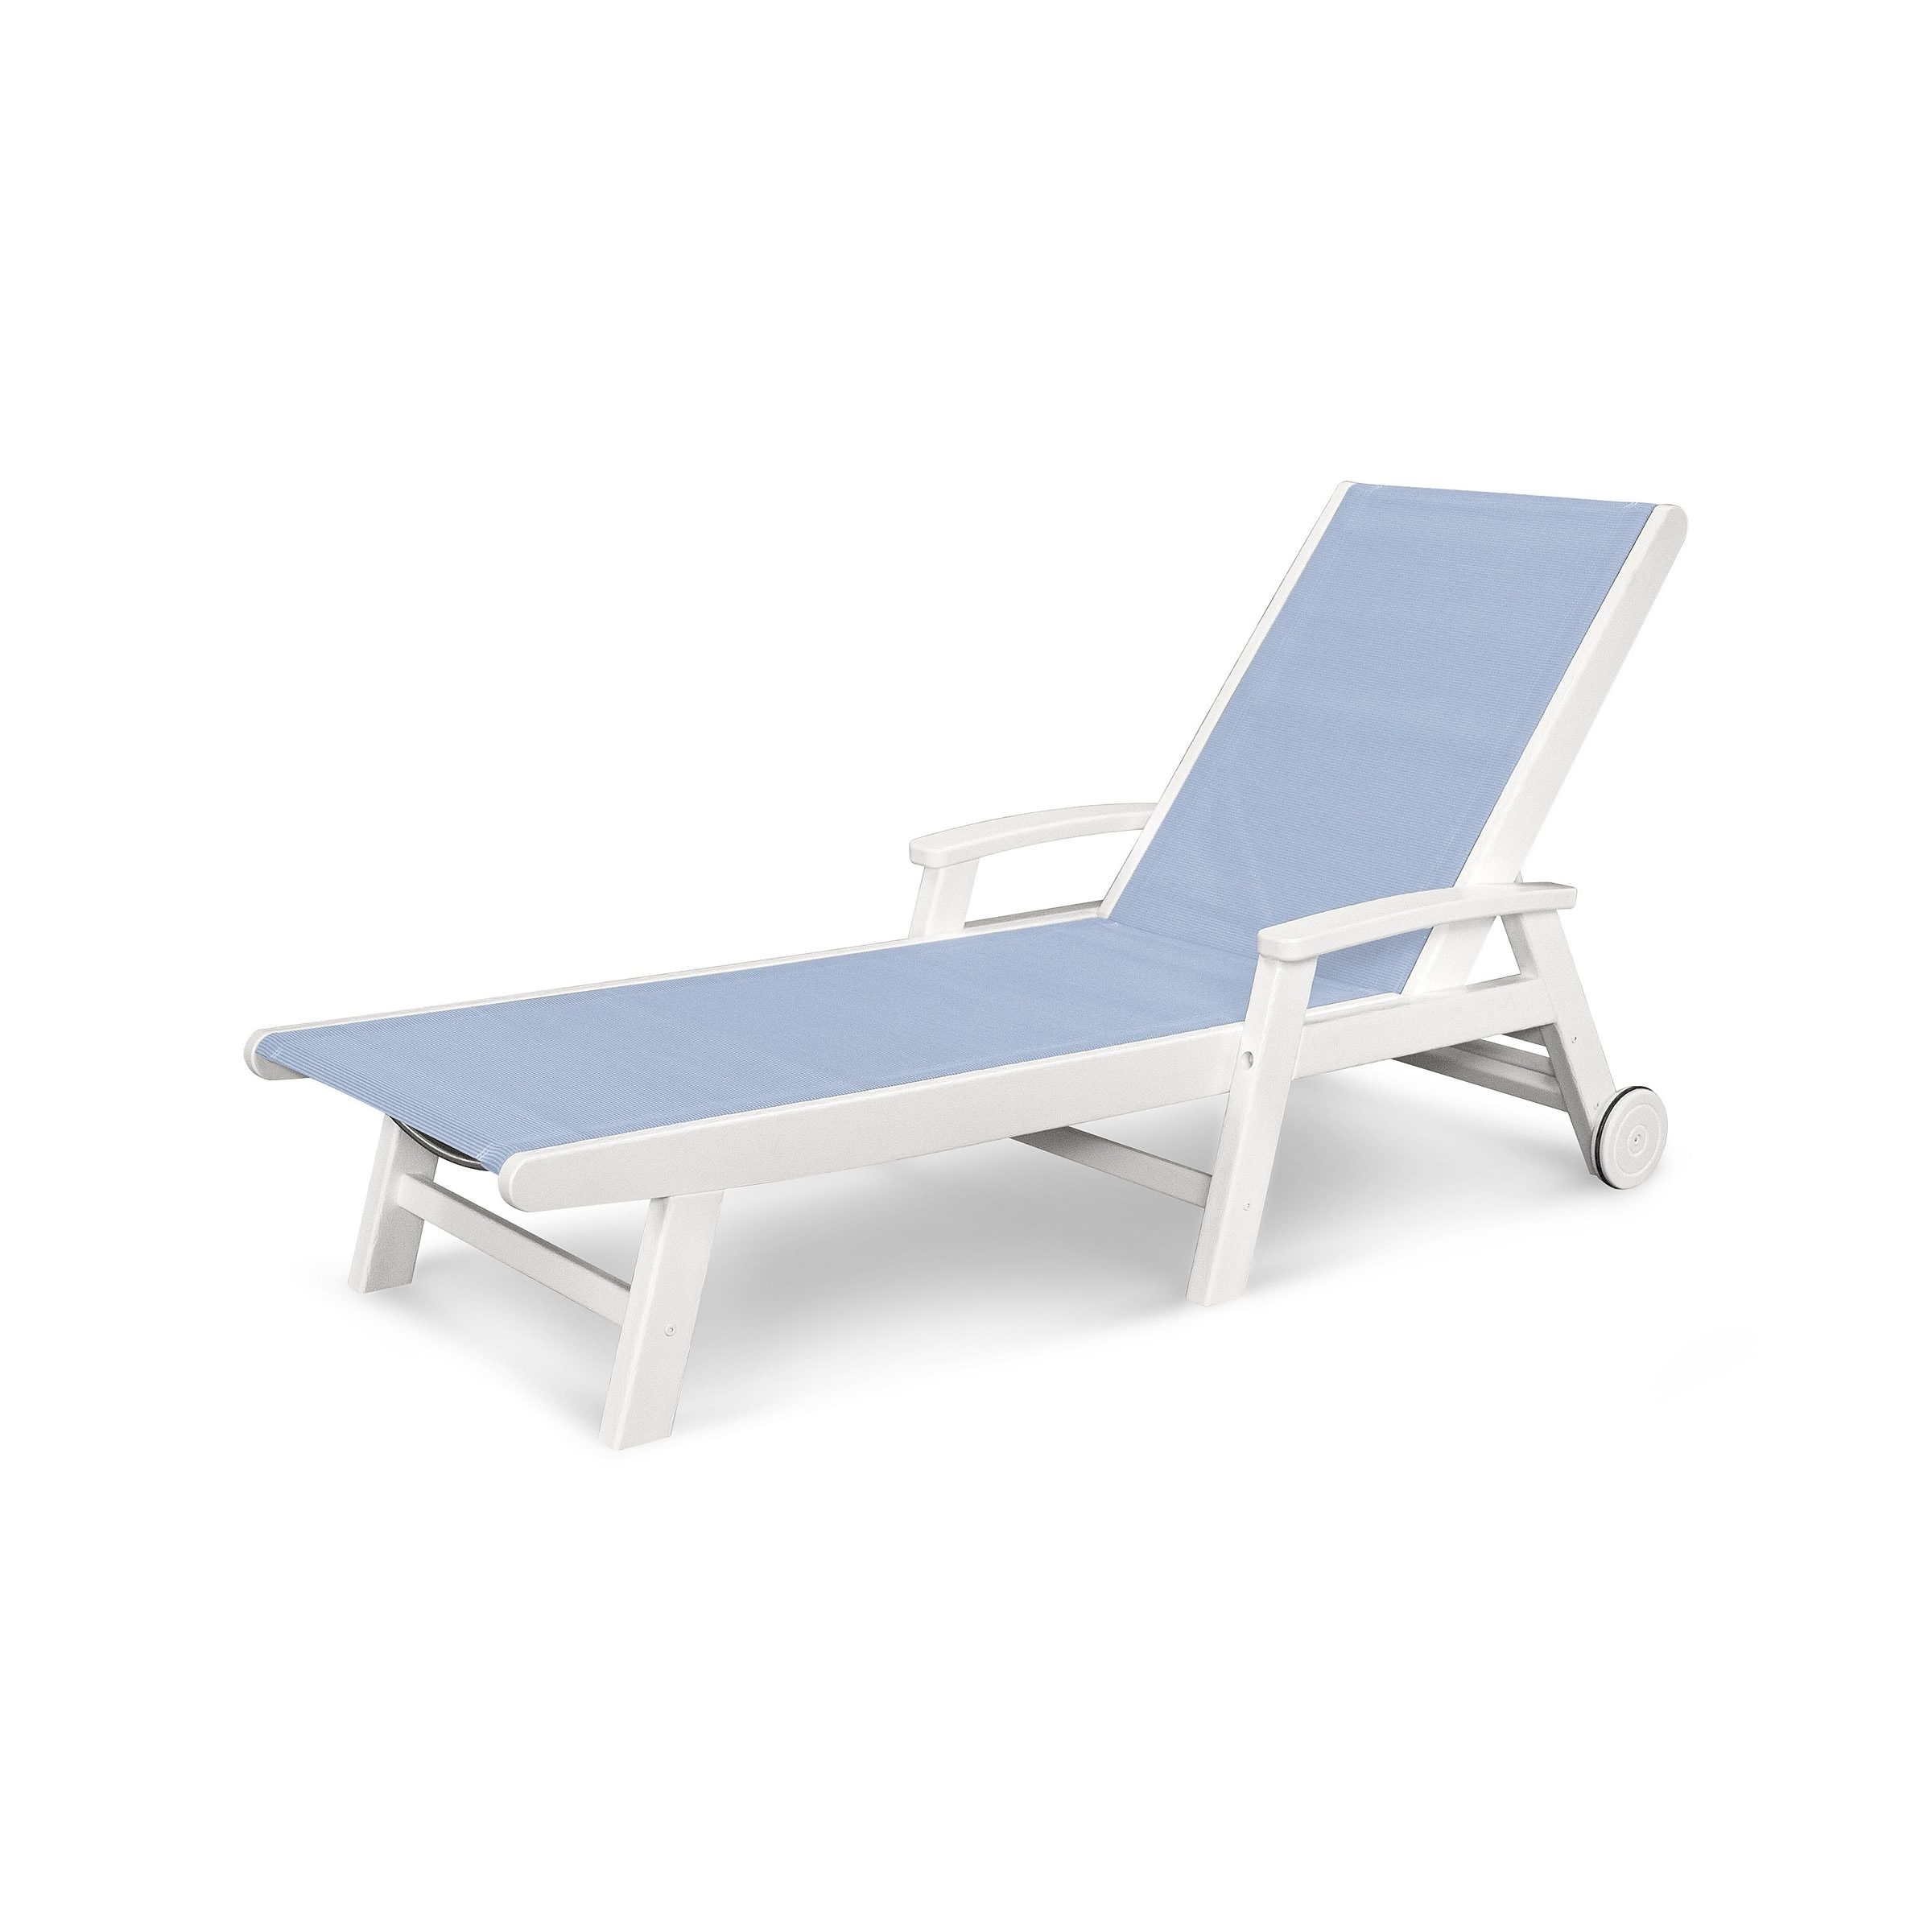 Most Recently Released Resin Chaise Lounges Regarding Resin Chaise Lounge Chairs • Lounge Chairs Ideas (View 9 of 15)